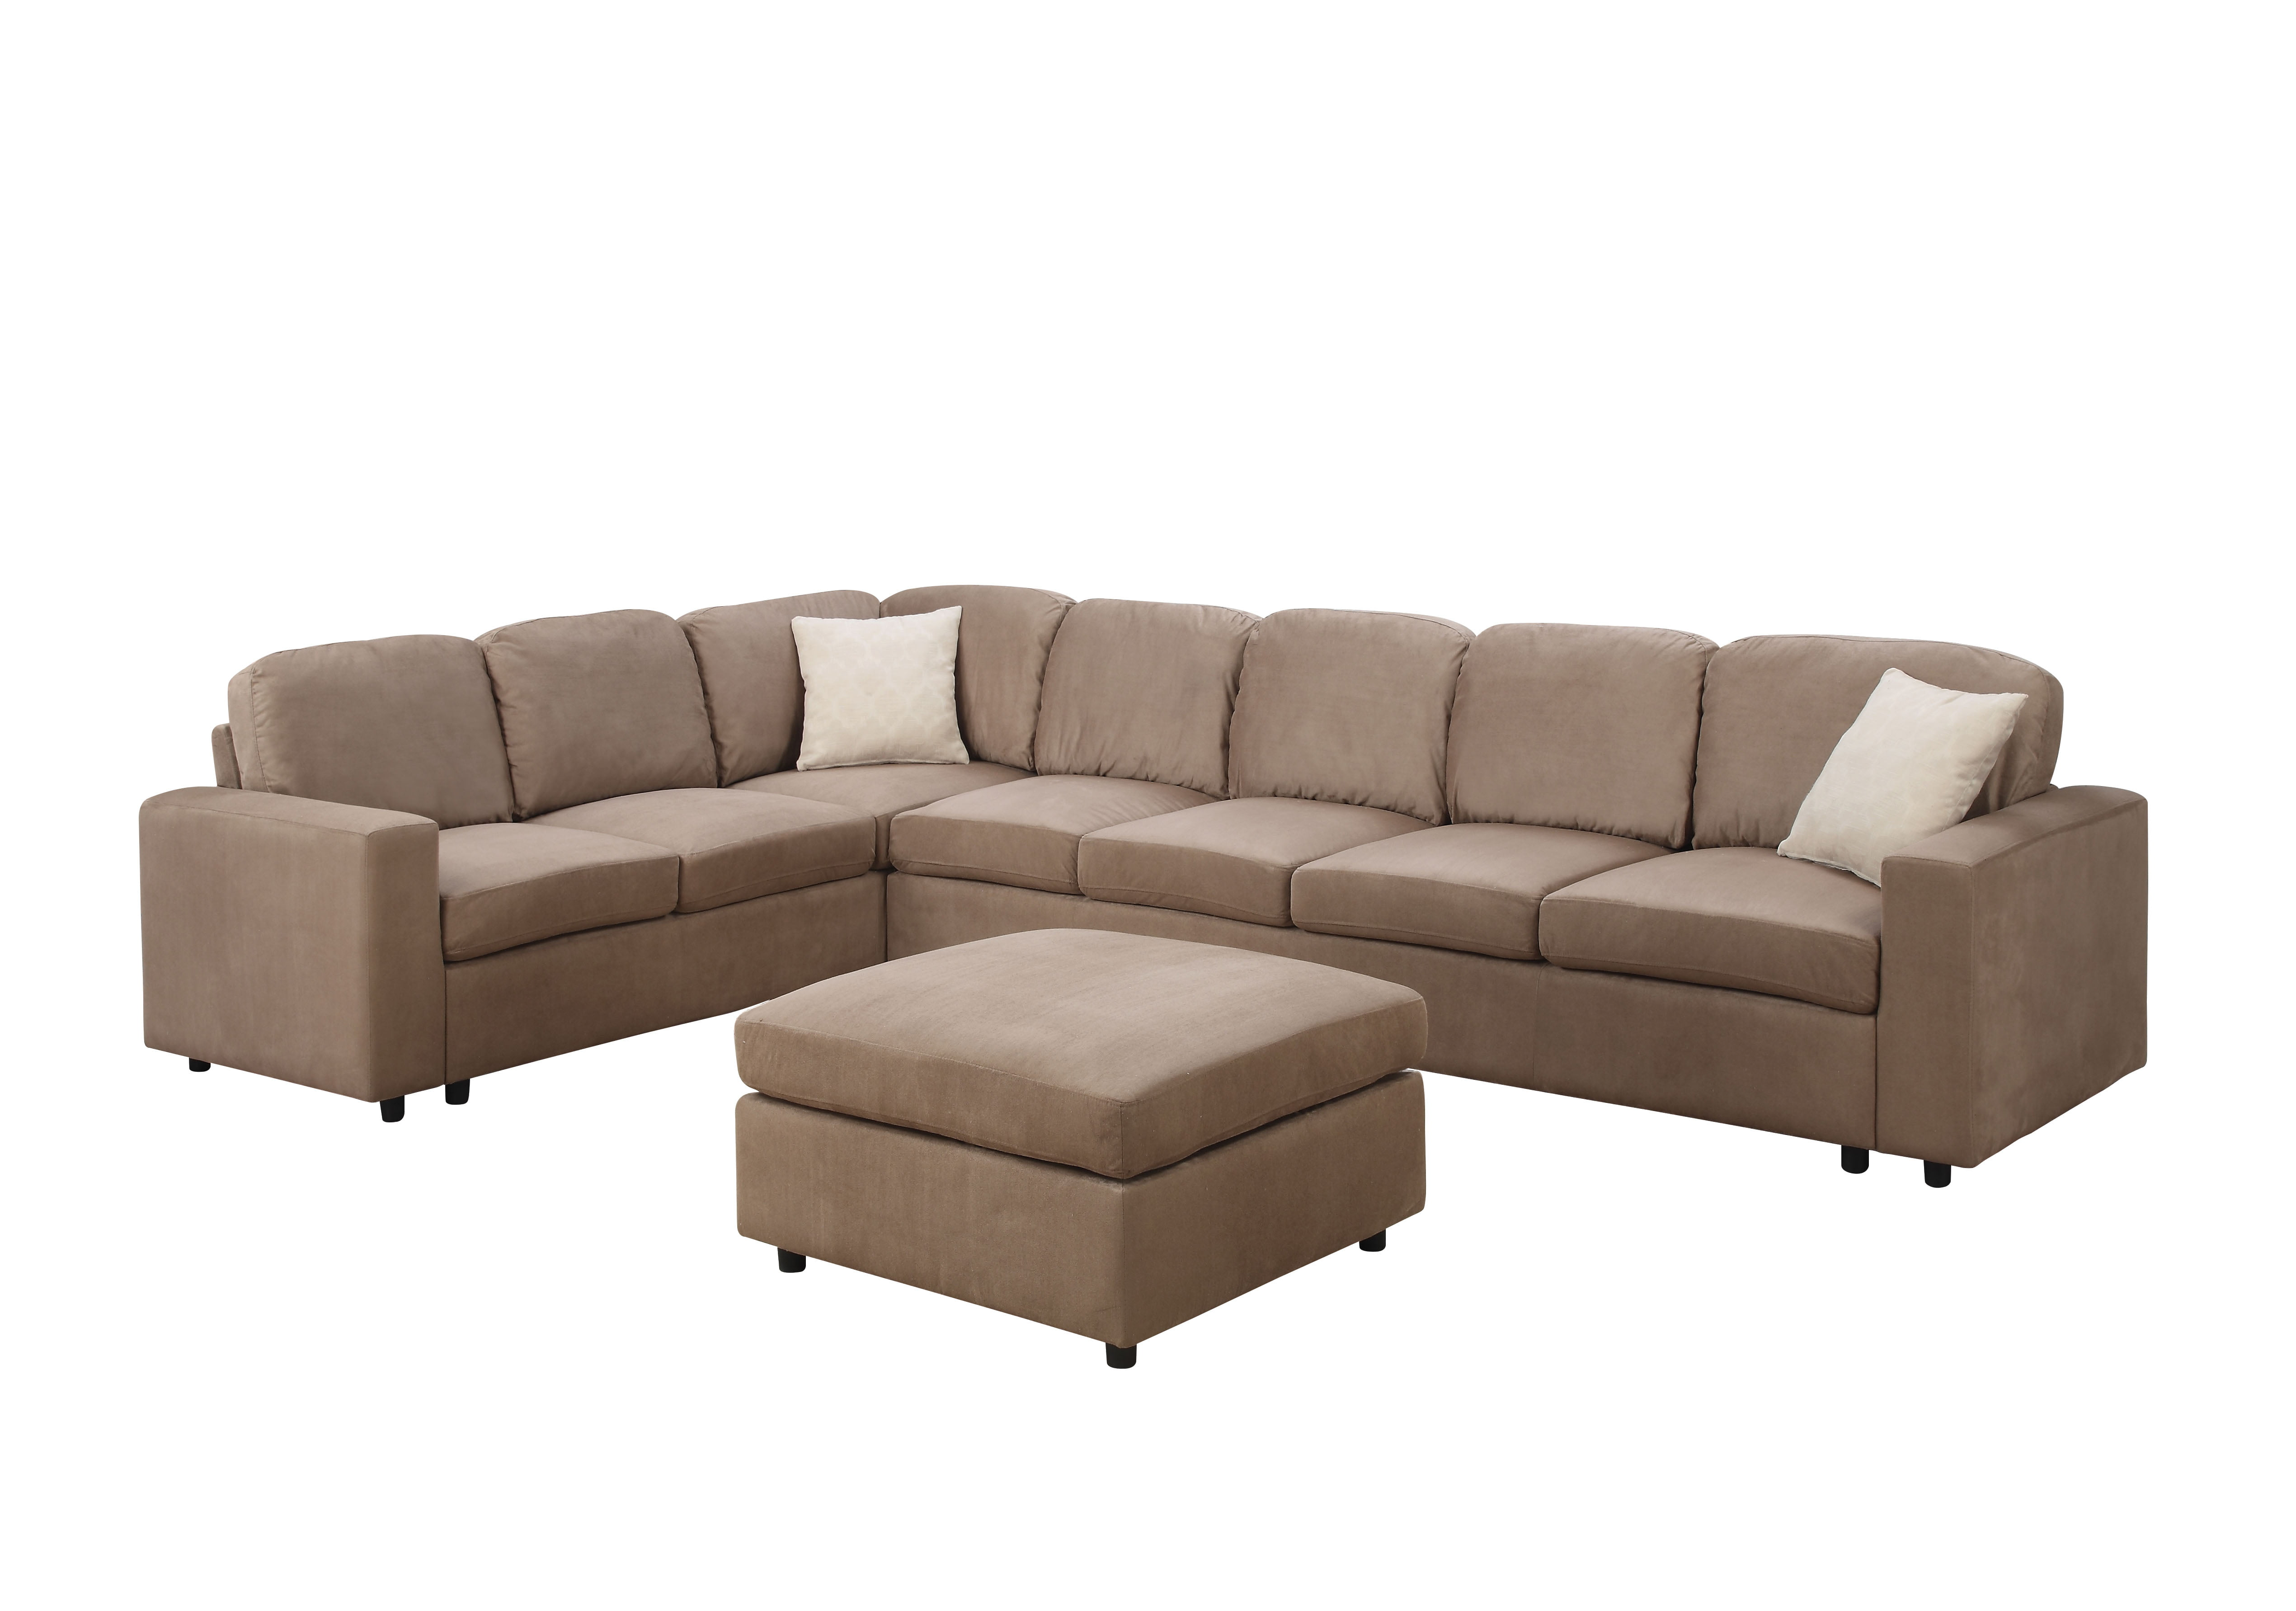 ACME Dannis Reversible Sectional Sofa with Pillows Saddle